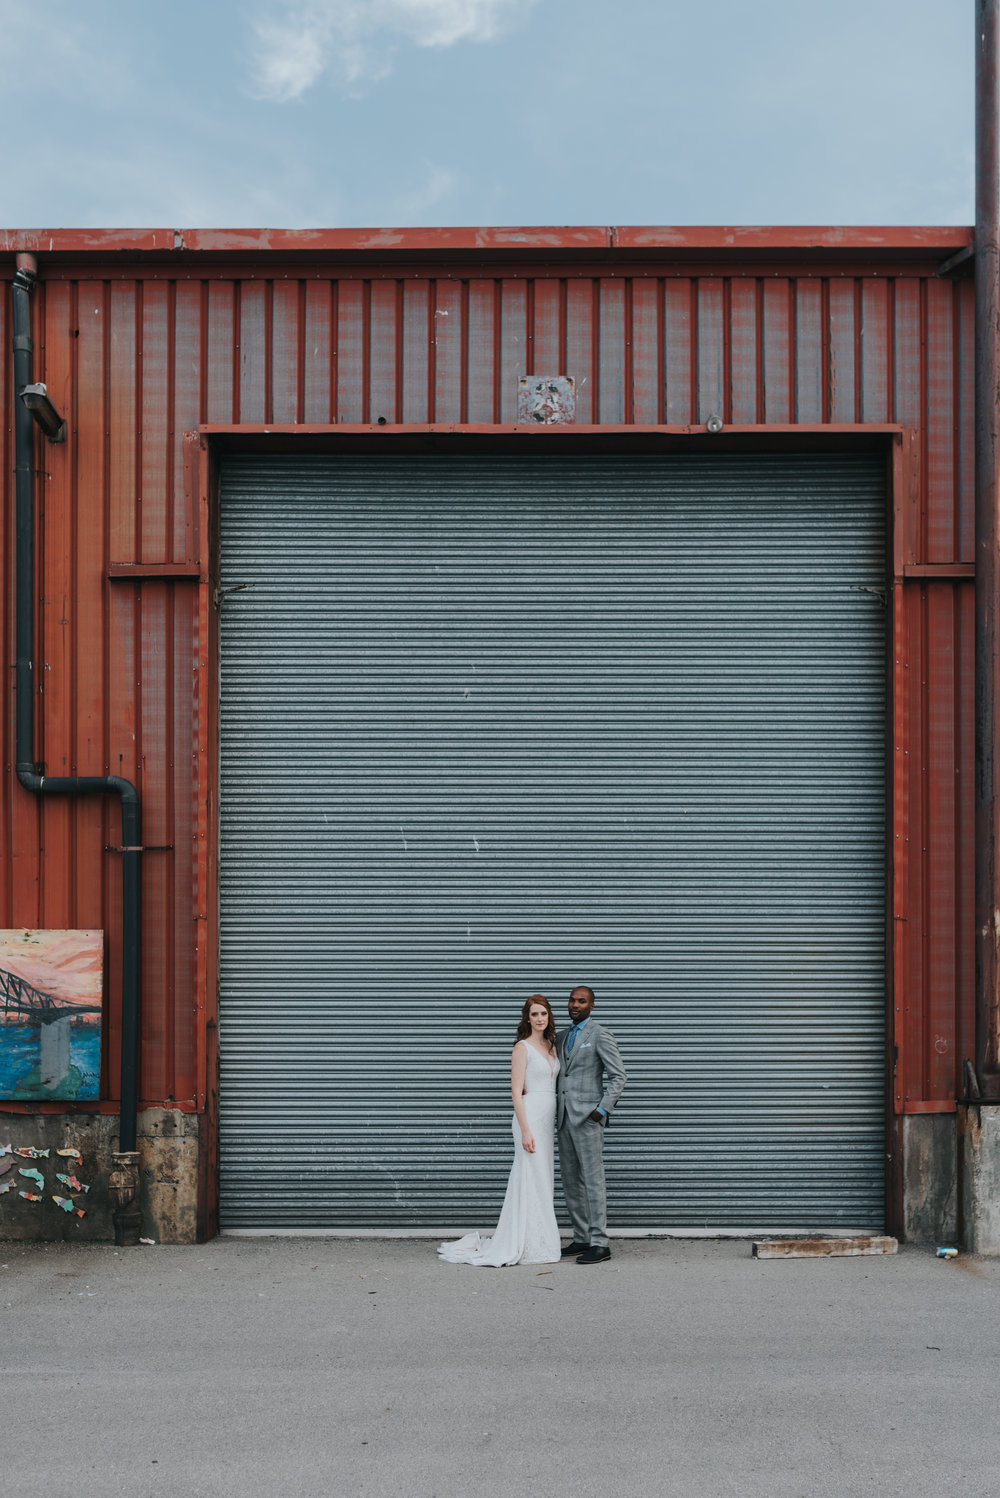 bride-groom-urban-portraits-toronto-outdoor-summer-wedding-documentary-wedding-photography-by-willow-birch-photo.jpg